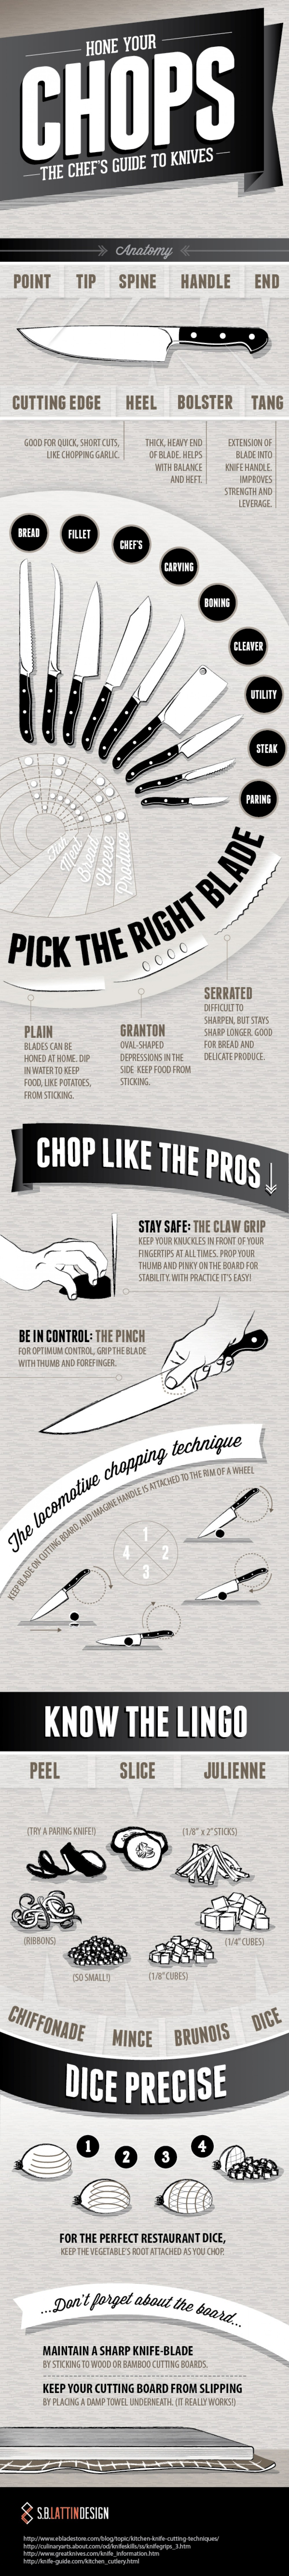 hone-your-chops-the-chefs-guide-to-knives_5068510a03b9a_w1500